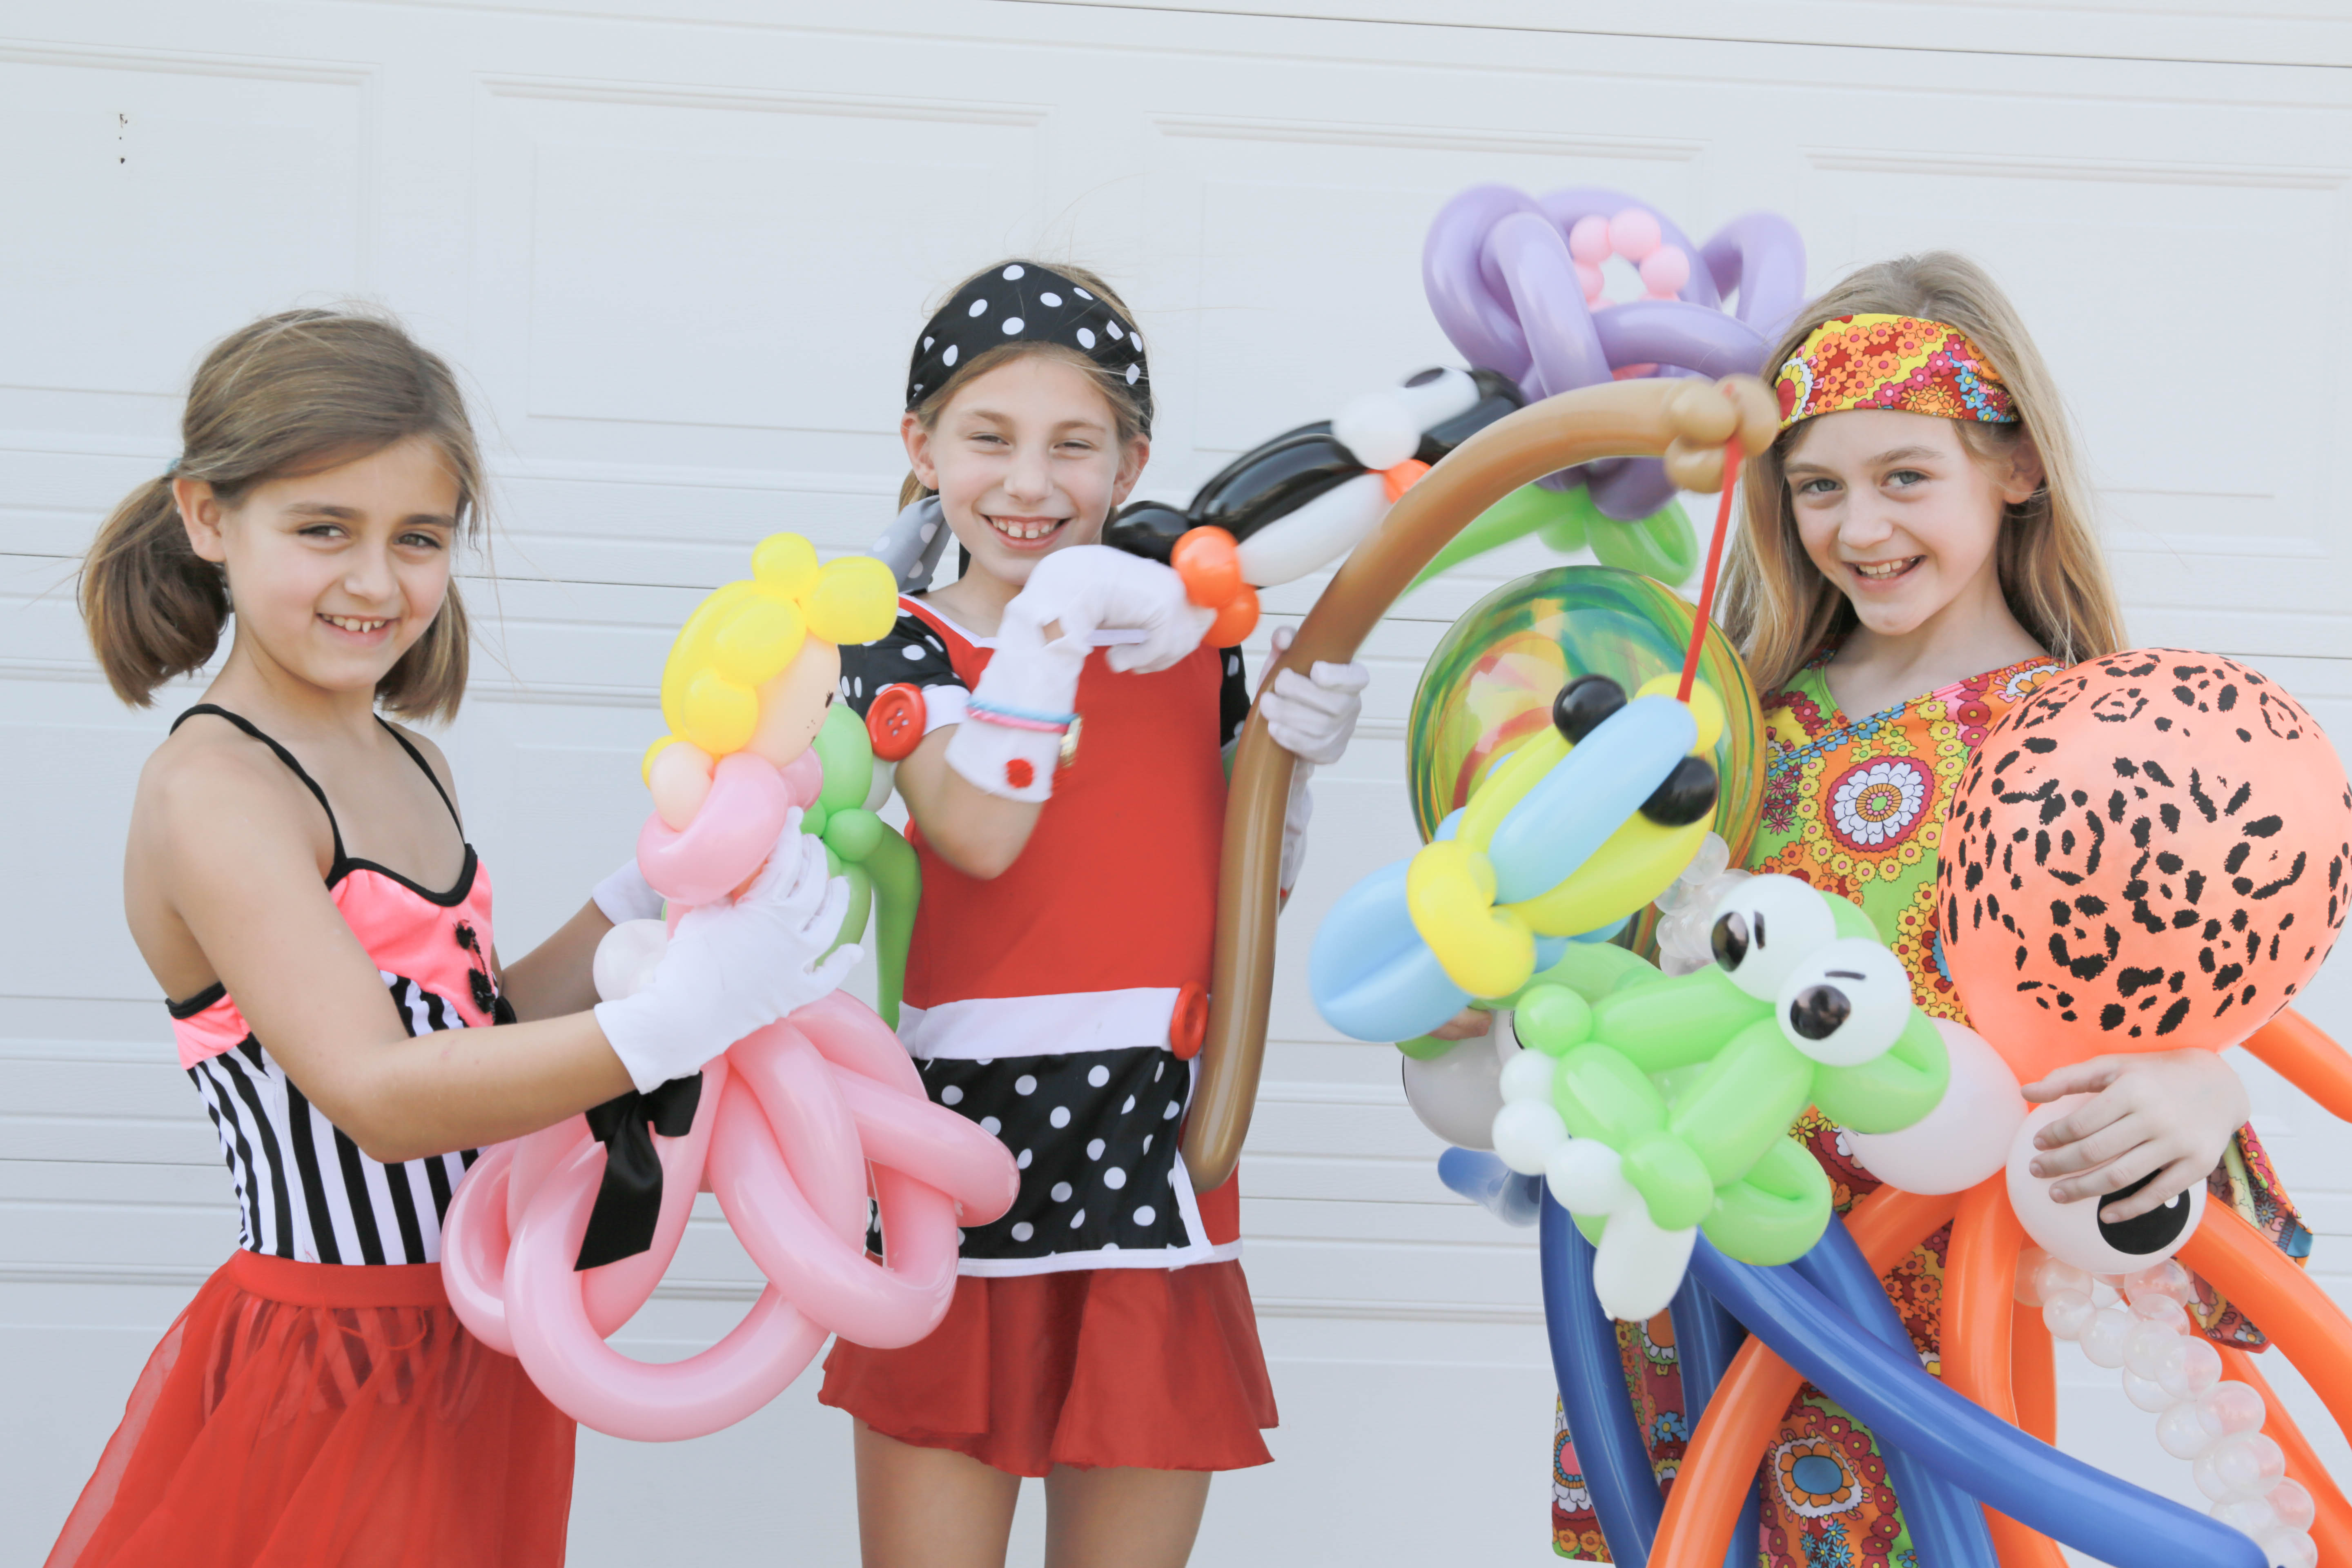 Balloon artists 2